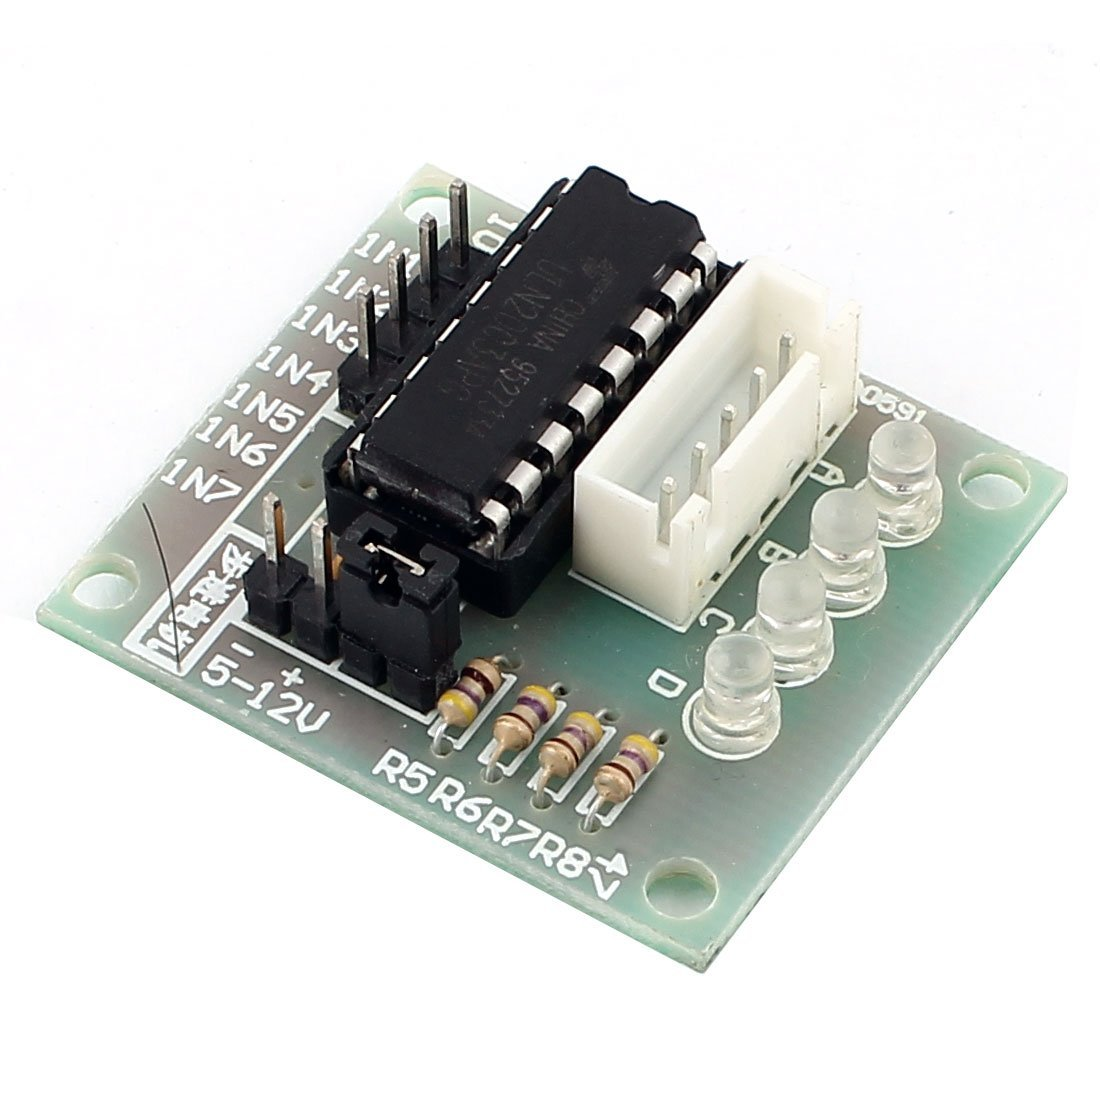 Cheap Motor Driver Schematic Find Deals On L298n H Bridge Diagram Free Download Wiring Diagrams Pictures Get Quotations Uxcell Uln2003 Stepper Board Avr Arm Green Black